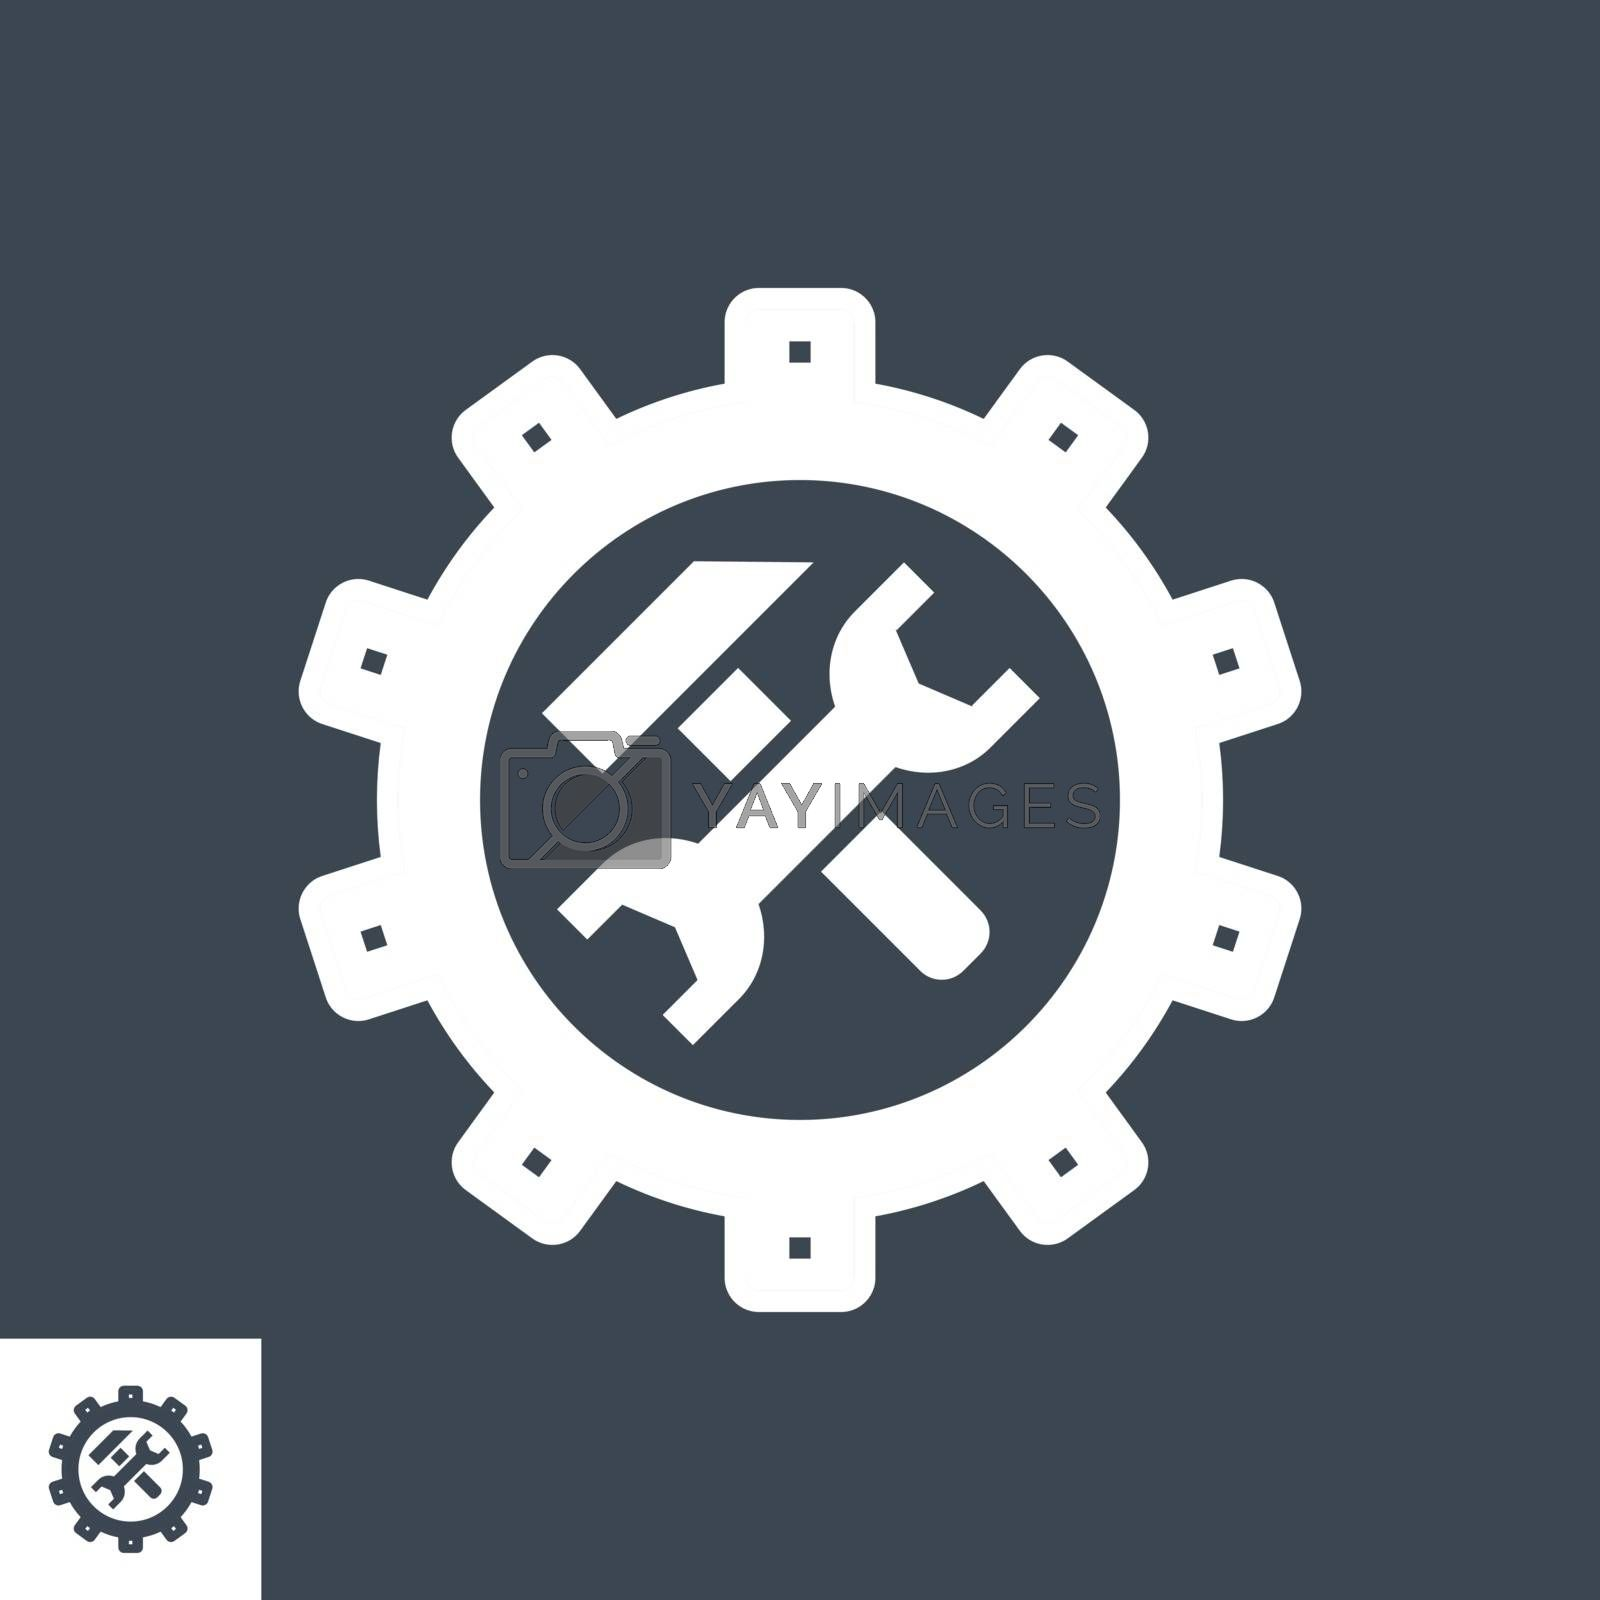 Technical Support Related Vector Glyph Icon. Isolated on Black Background. Vector Illustration.